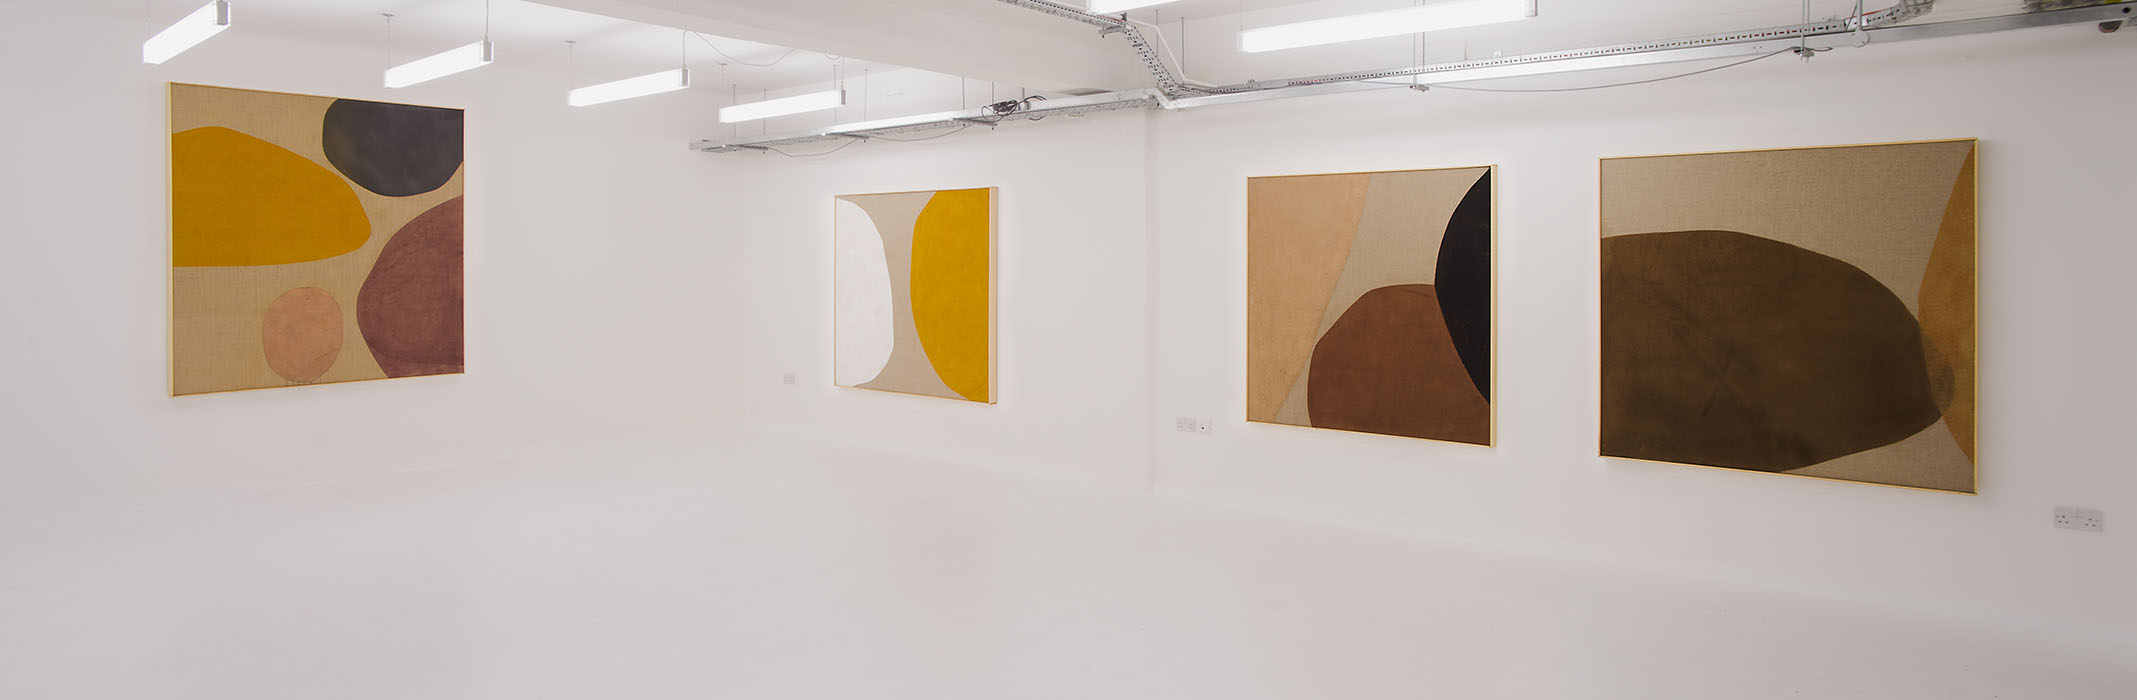 Elements of Silence, 2015